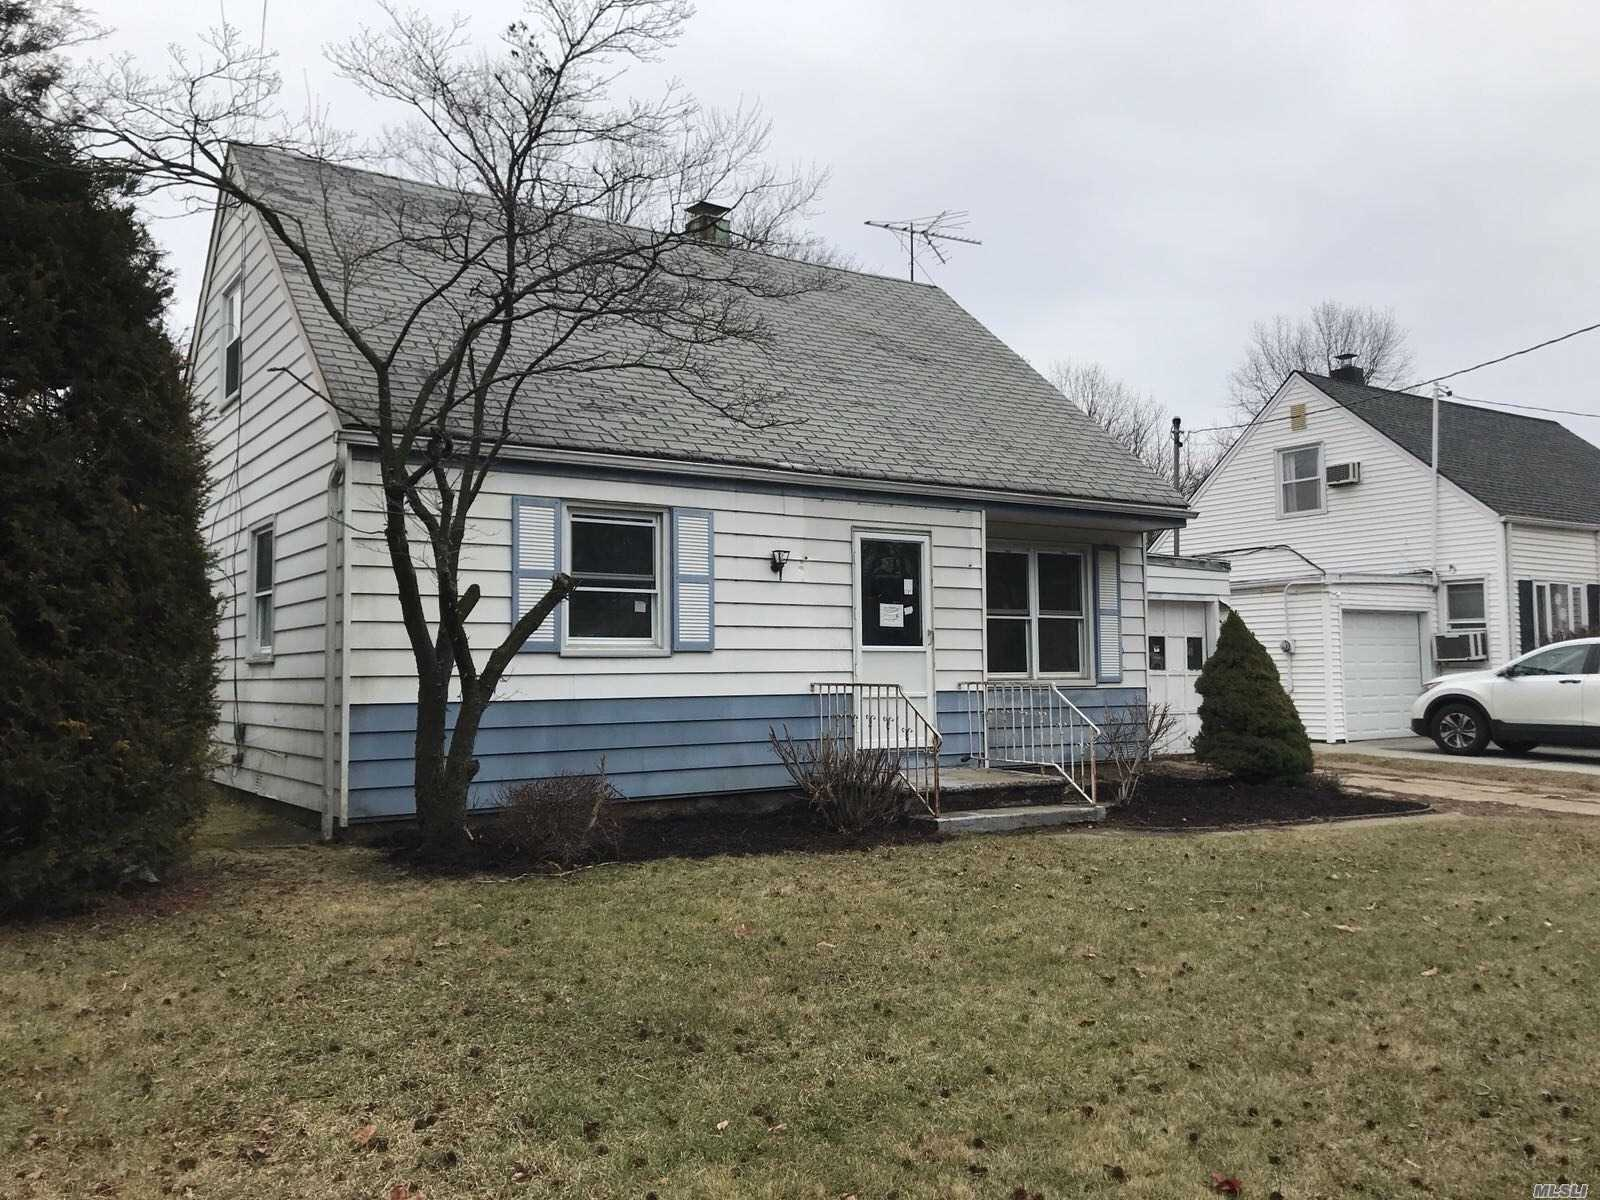 Detached Single Family Cape With An Attached One Car Garage. First Floor Consists Of Living Room/Dining Room Combo, Kitchen, Two Bedrooms And One Full Bathroom. Close To Schools, Churches, And Transportation.